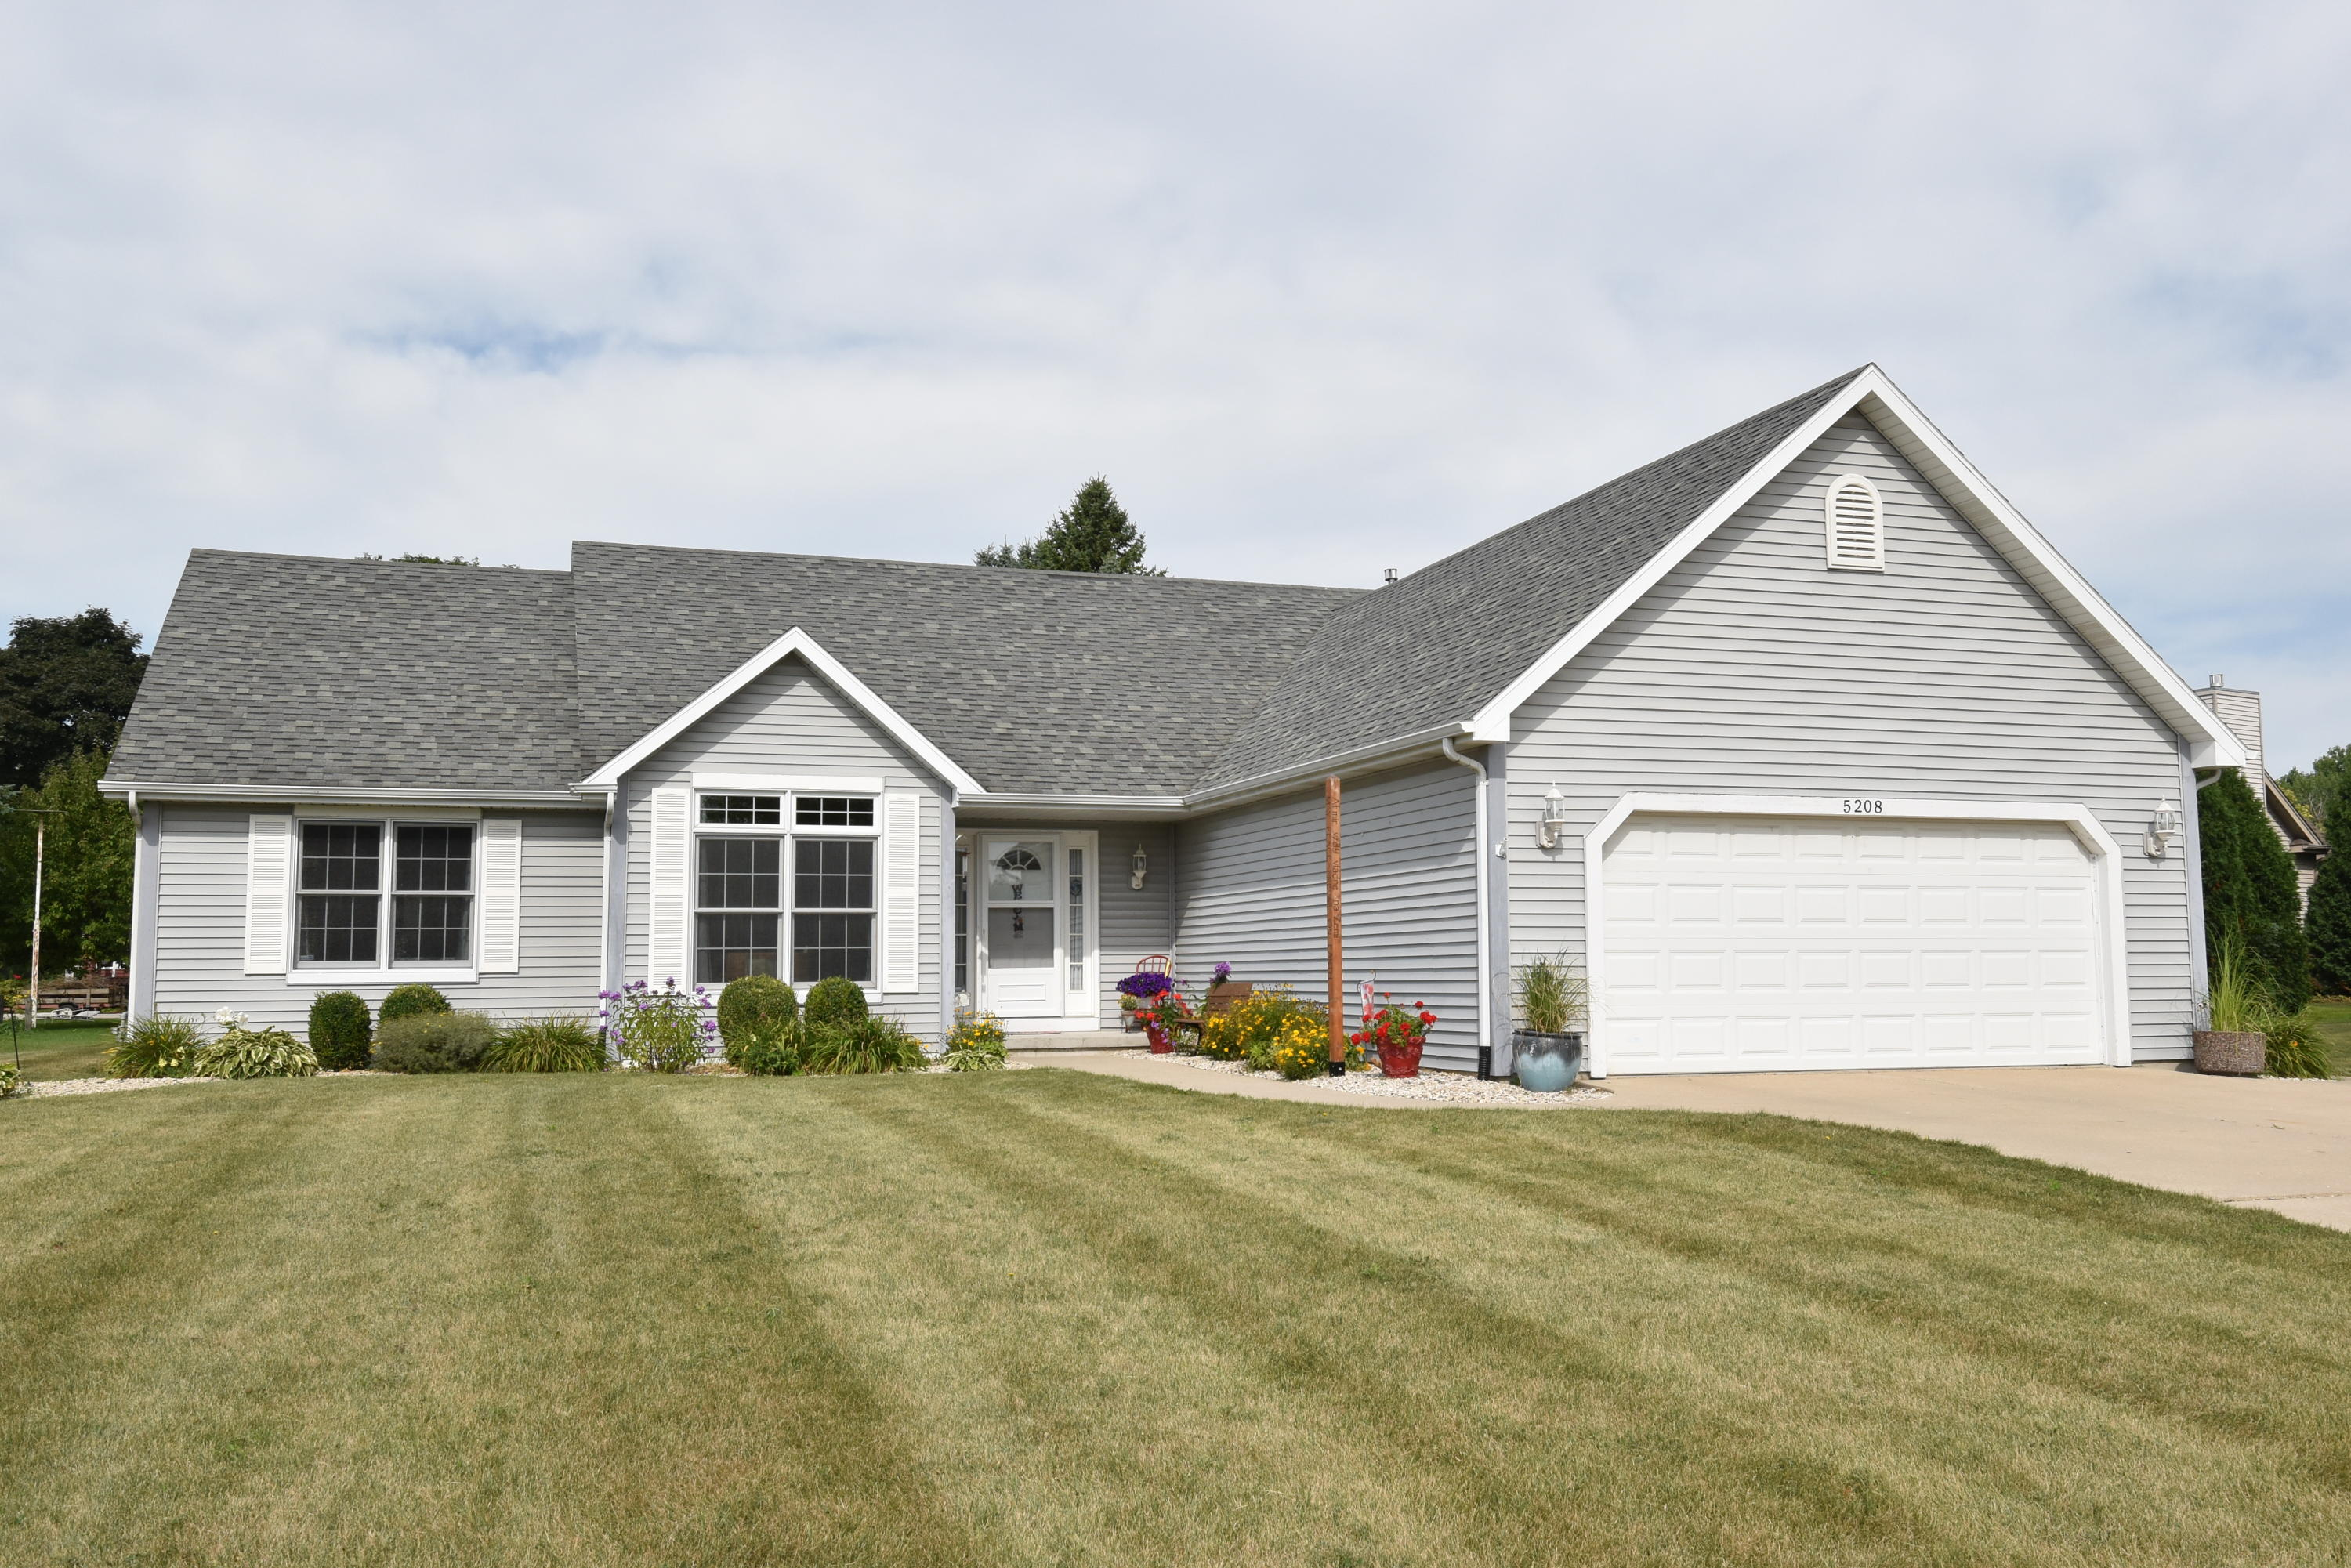 Real Estate Property Listing ID: 1654702